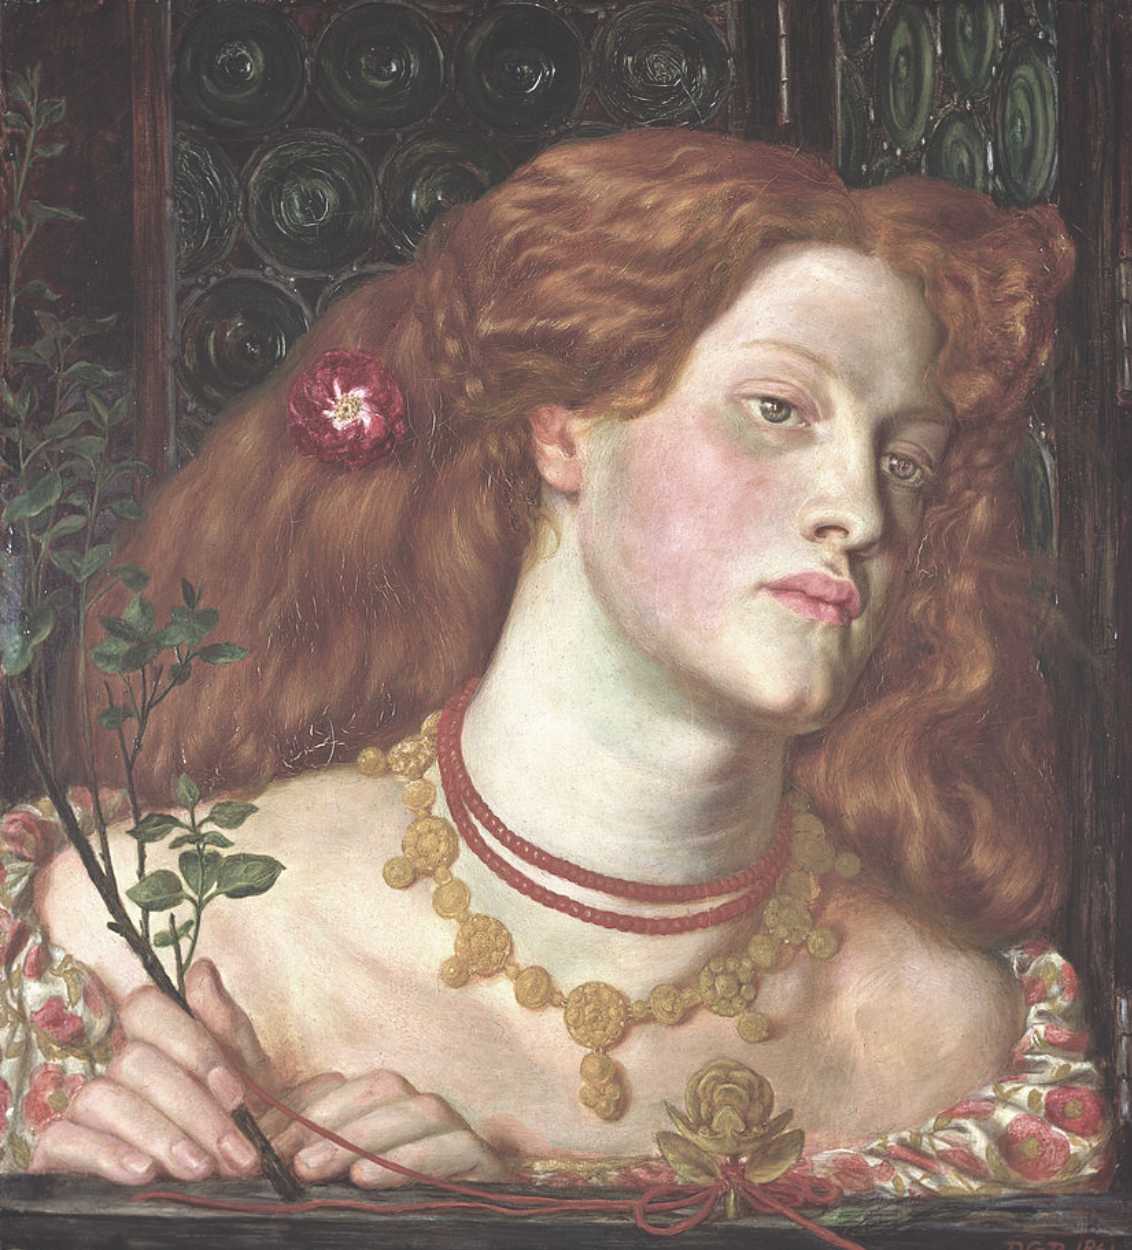 Portrait of Rosamund Clifford from Hisdoryan's post: 'The First Royal Mistress? Rosamund Clifford' - 19 February 2019